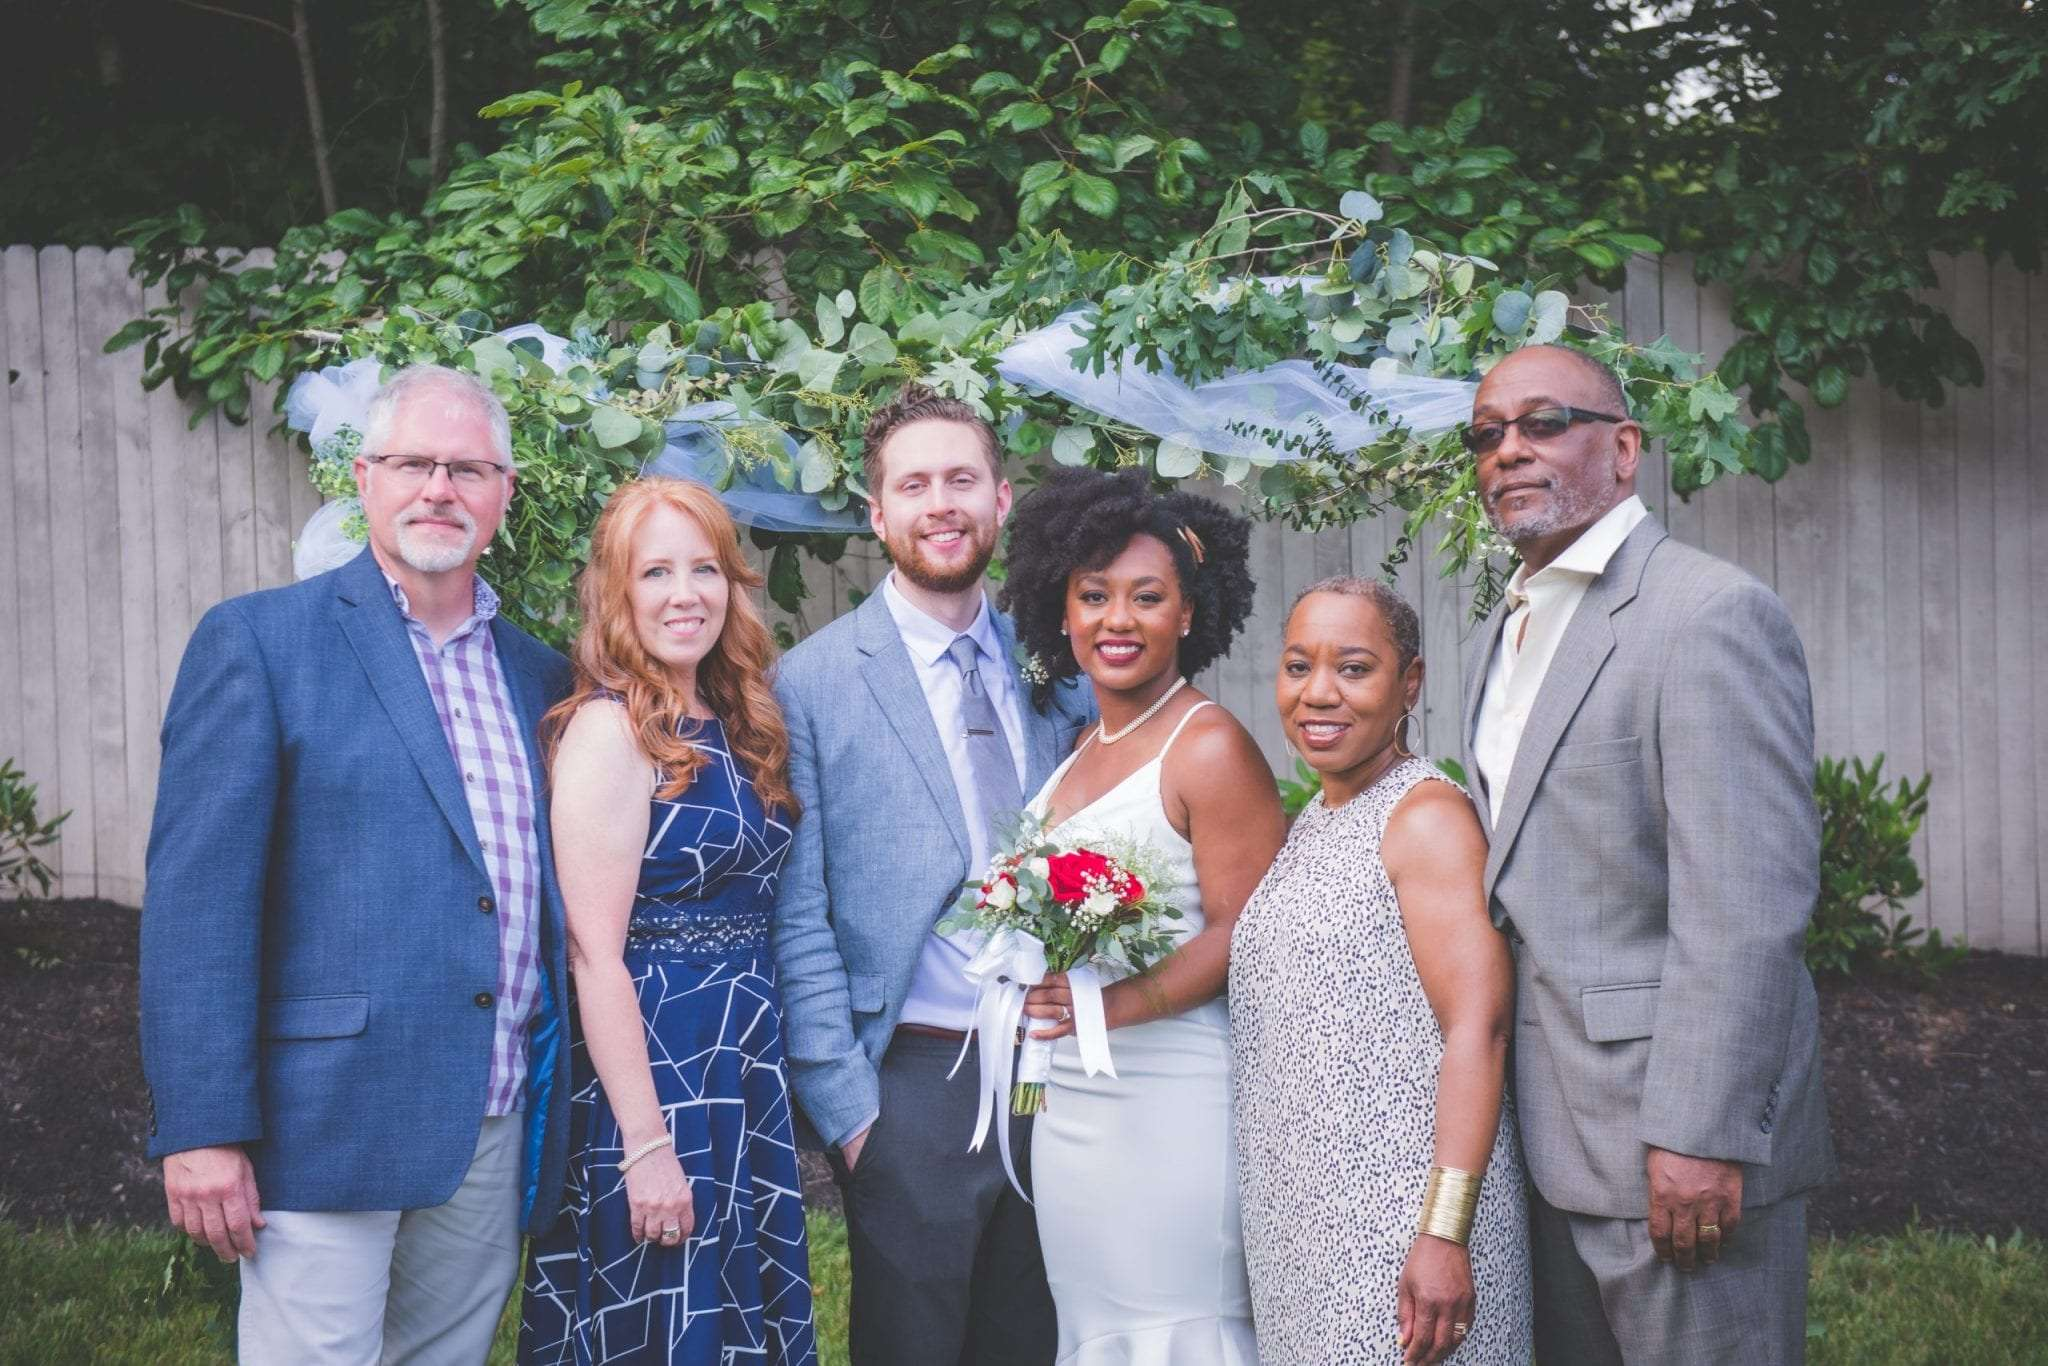 family photos NJ backyard Micro wedding